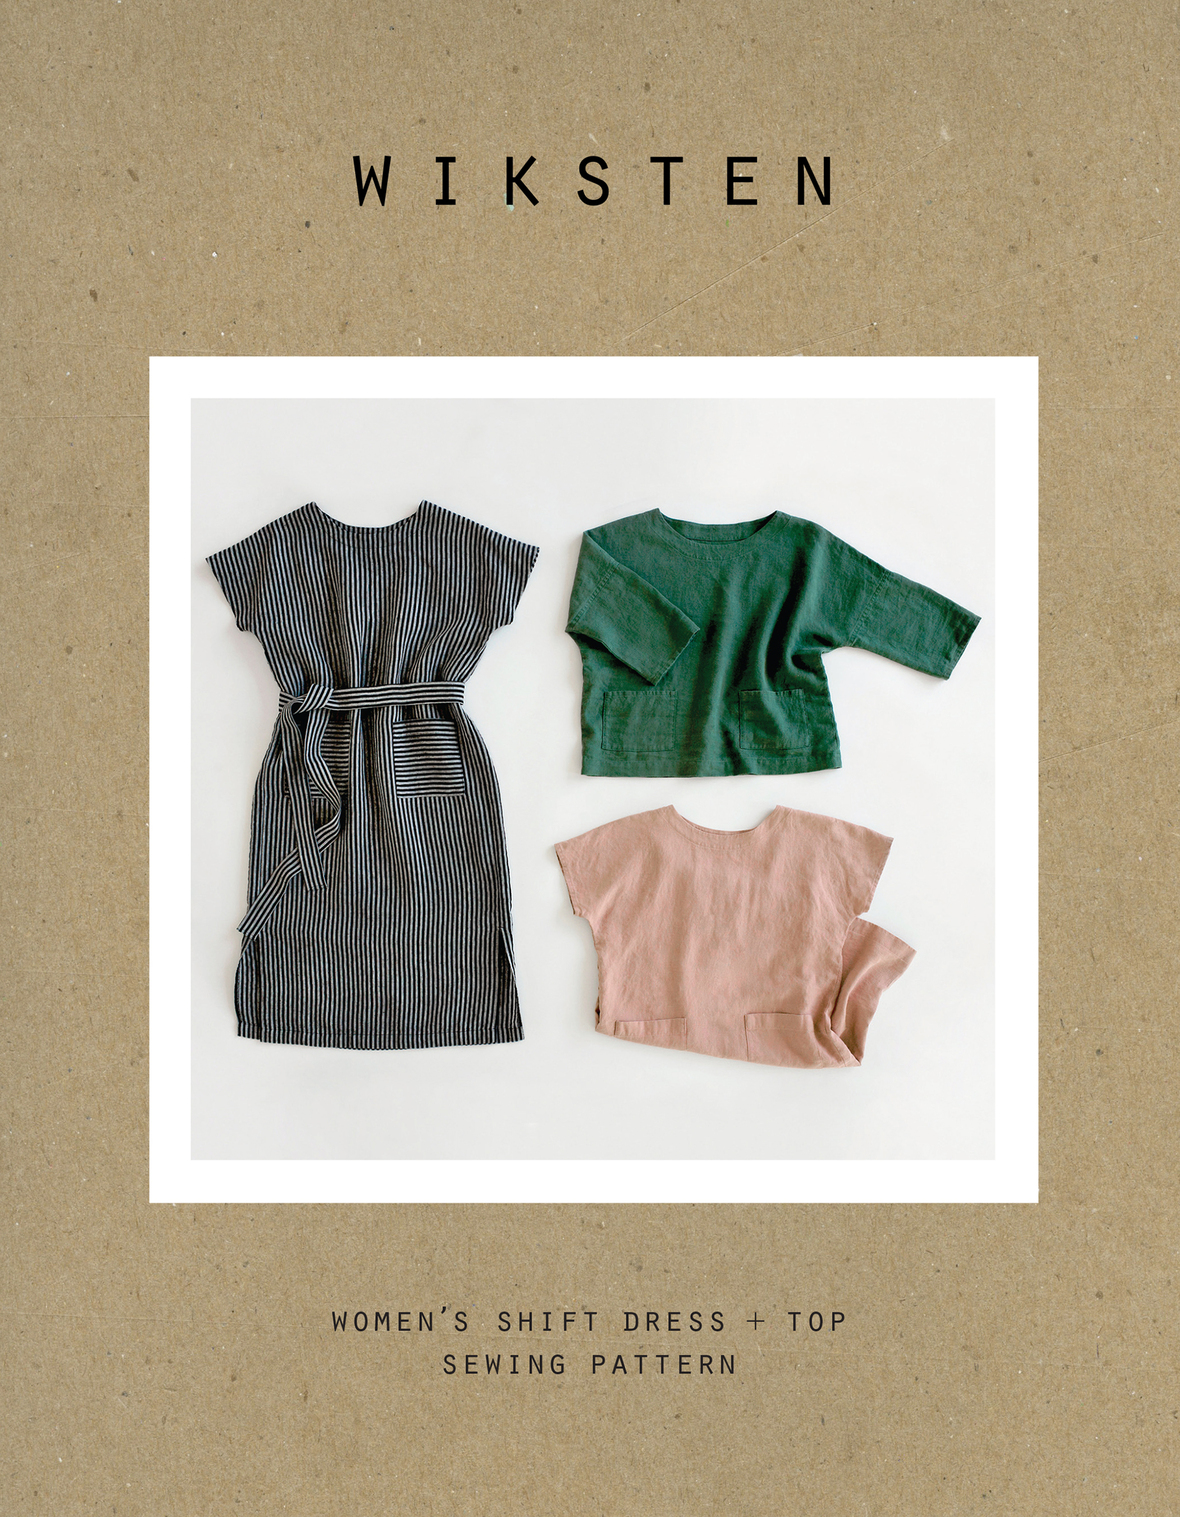 Wiksten Shift Dress Envelope Front